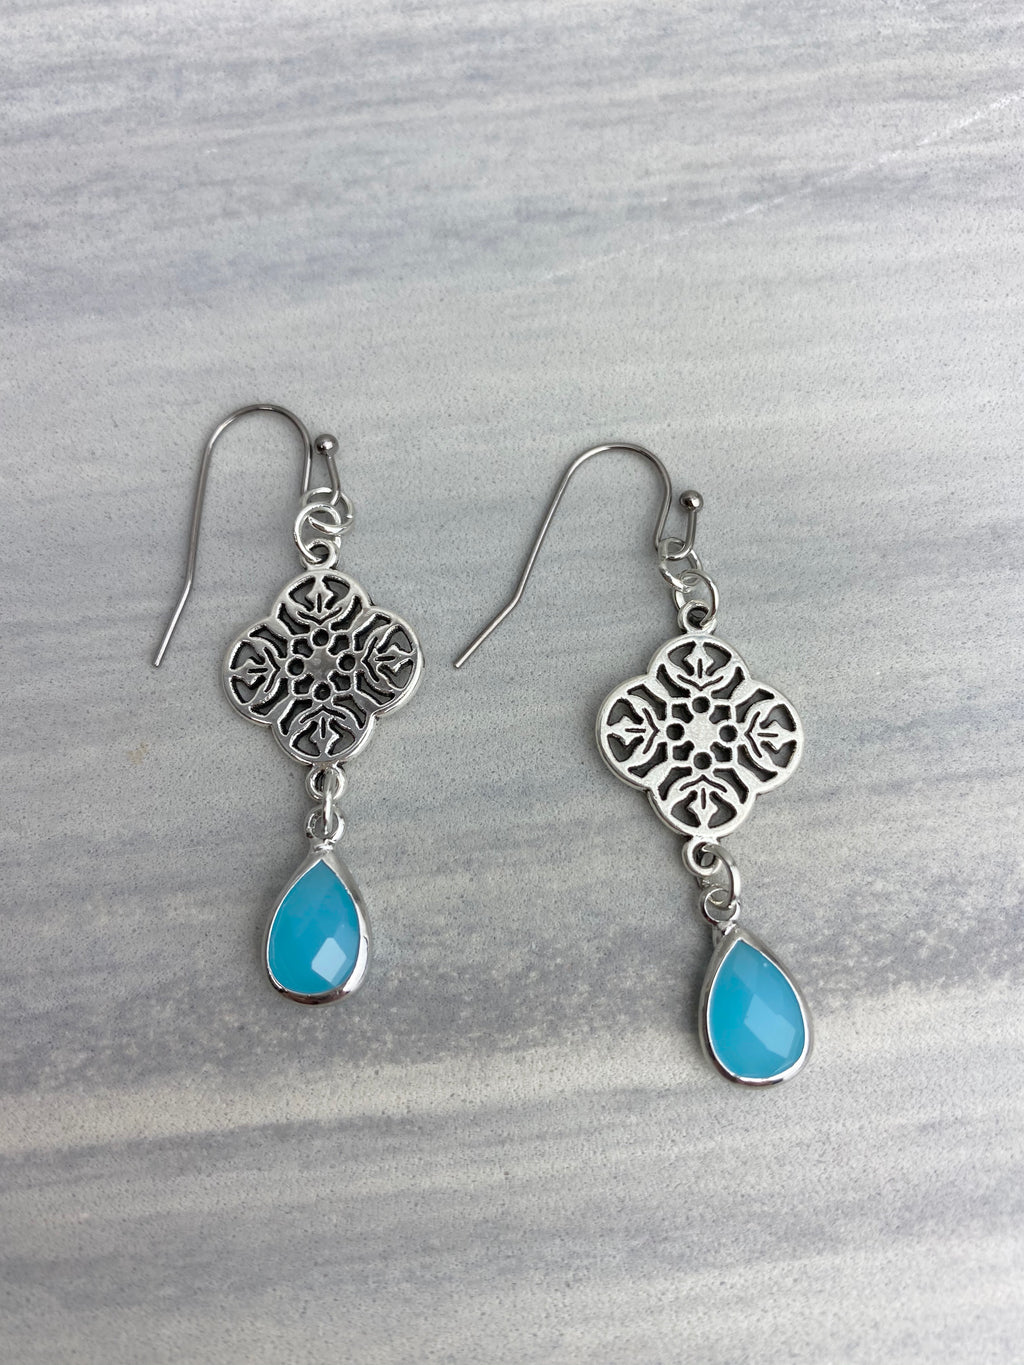 Iced Turquoise Earrings